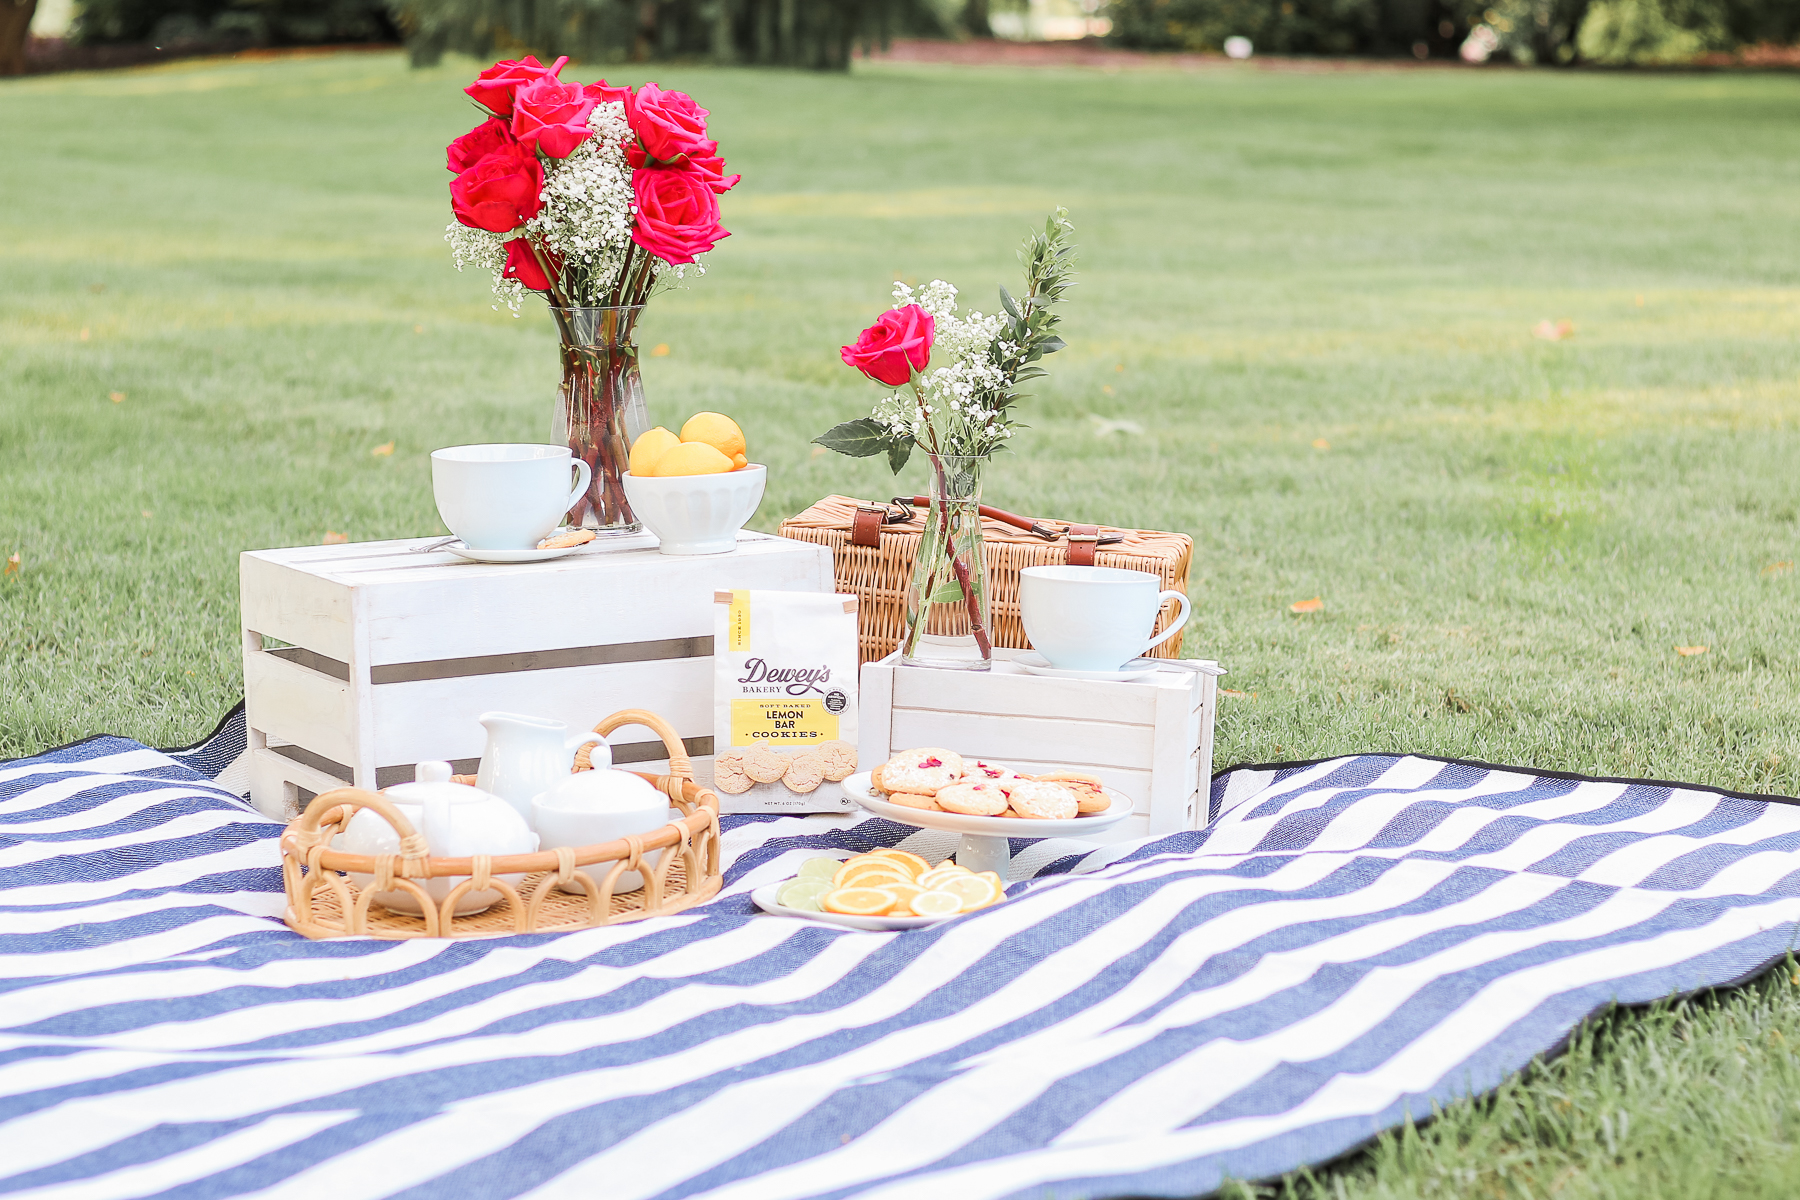 The Perfect Afternoon Tea Picnic Spread by popular midwest lifestyle blogger Stephanie Ziajka on Diary of a Debutante, tea party picnic spread, tea party picnic ideas, afternoon tea picnic ideas, Dewey's Bakery Lemon Bar Cookies